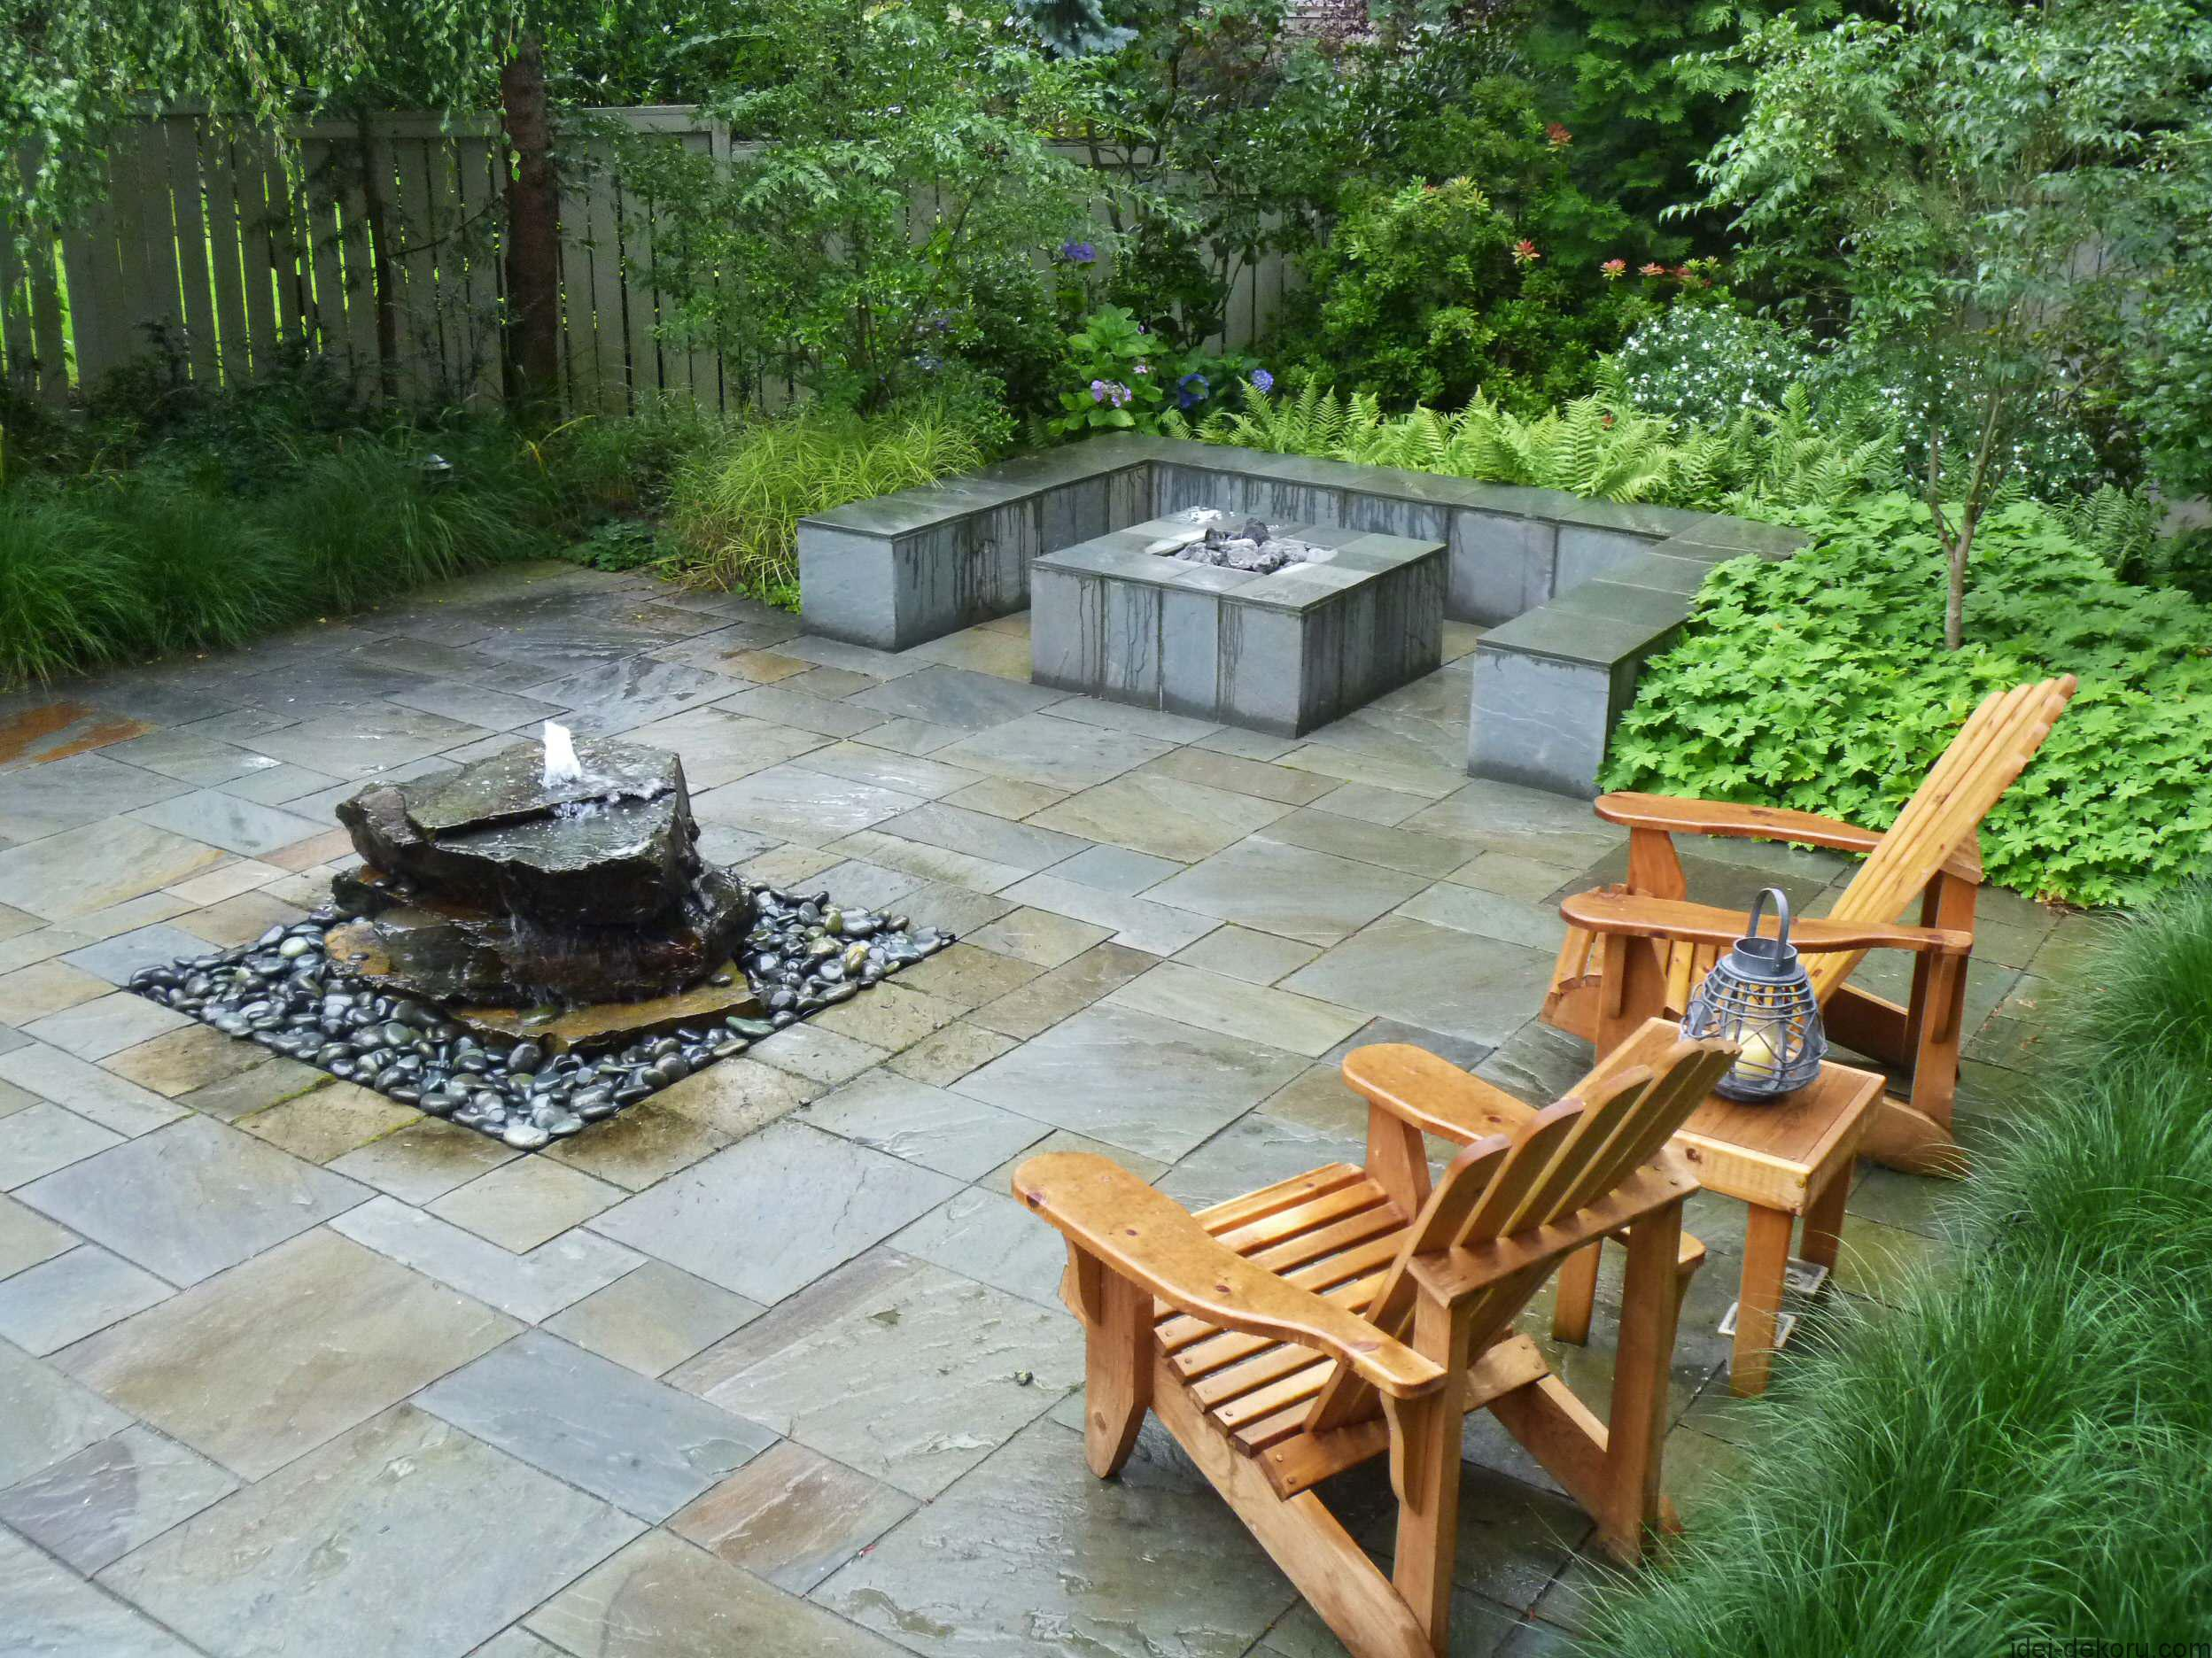 stone-pavers-and-pondless-water-features-with-gravels-also-patio-furniture-and-outdoor-fireplace-and-built-in-benches-for-backyard-landscaping-landscape-water-features